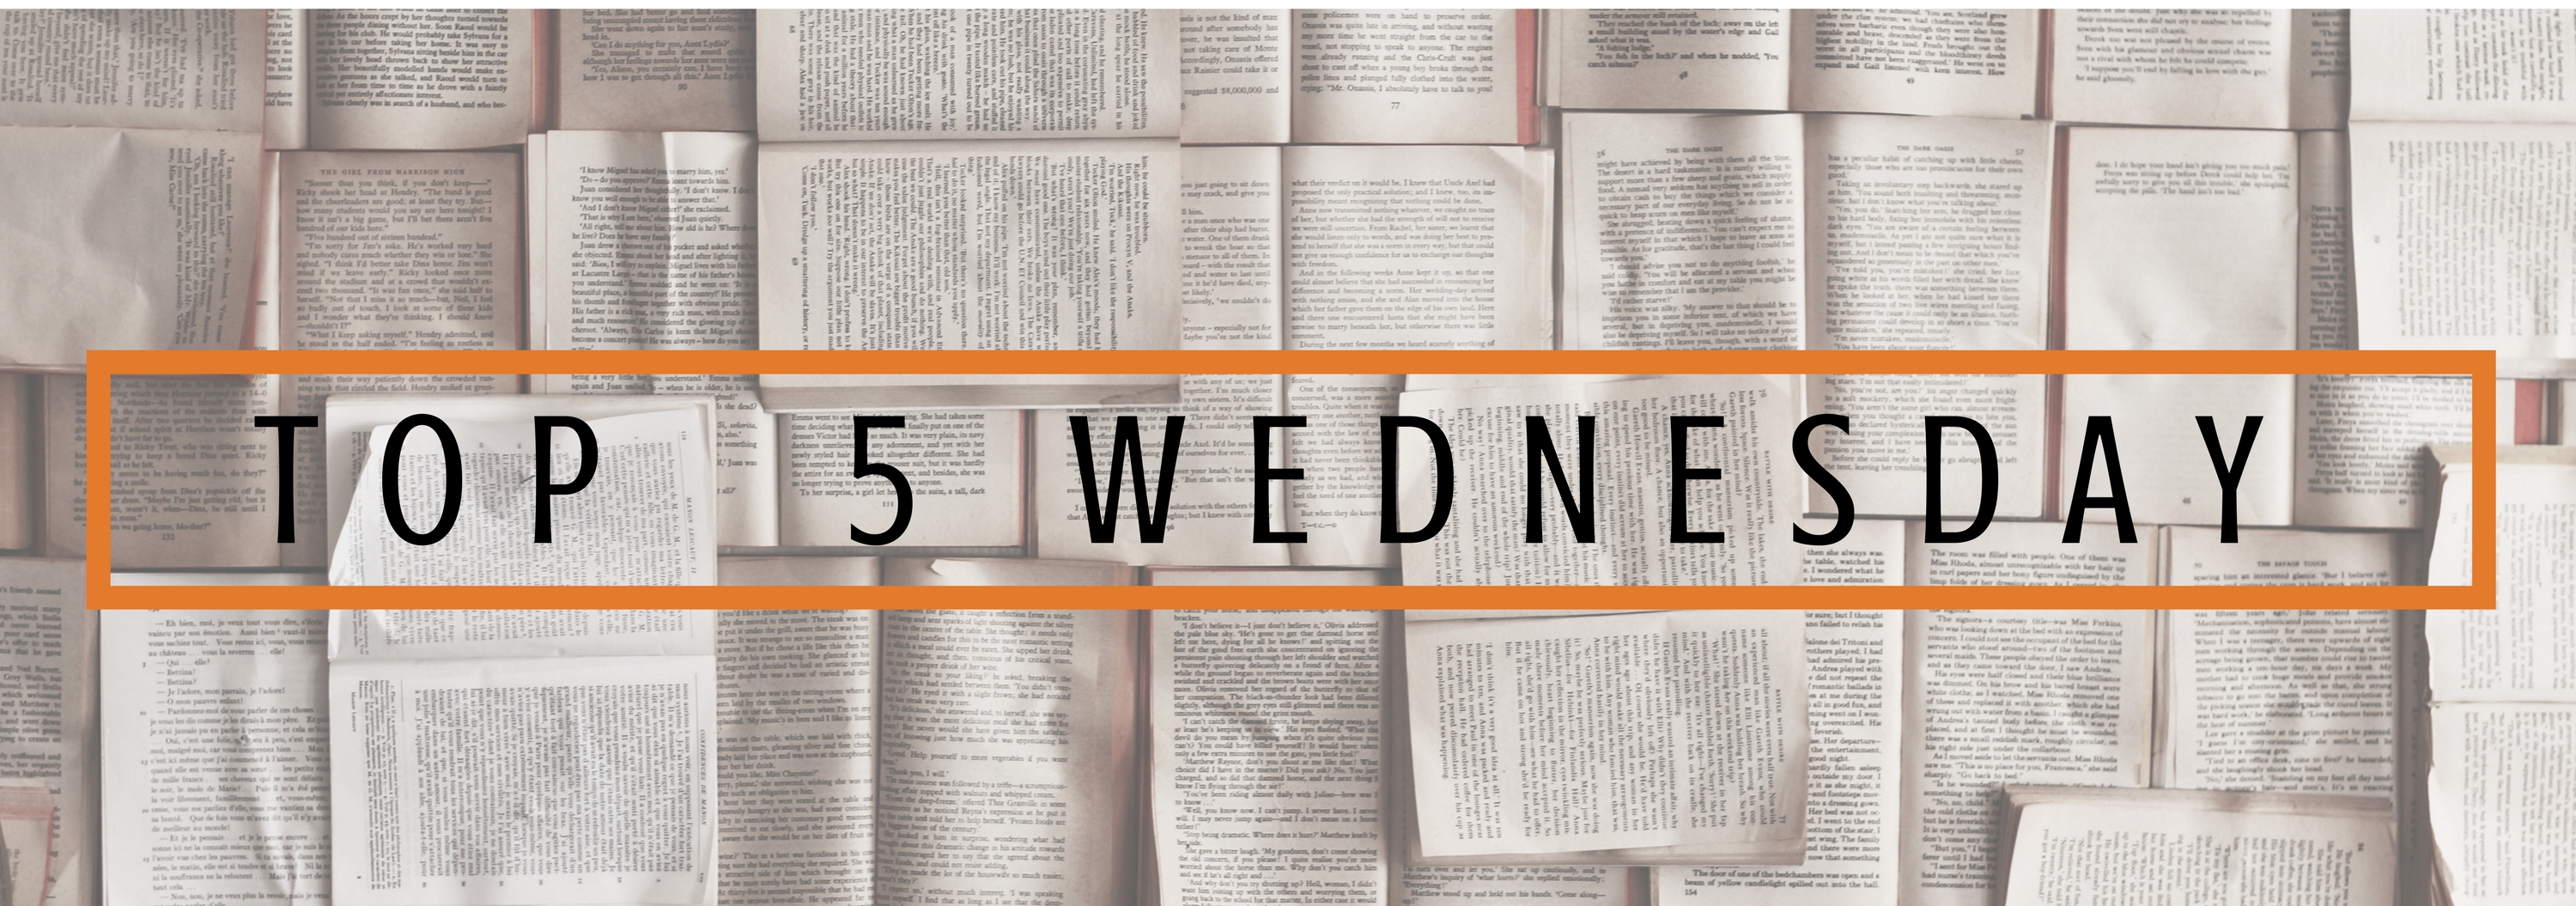 Top 5 Wednesday | Books From Before I Joined WordPress